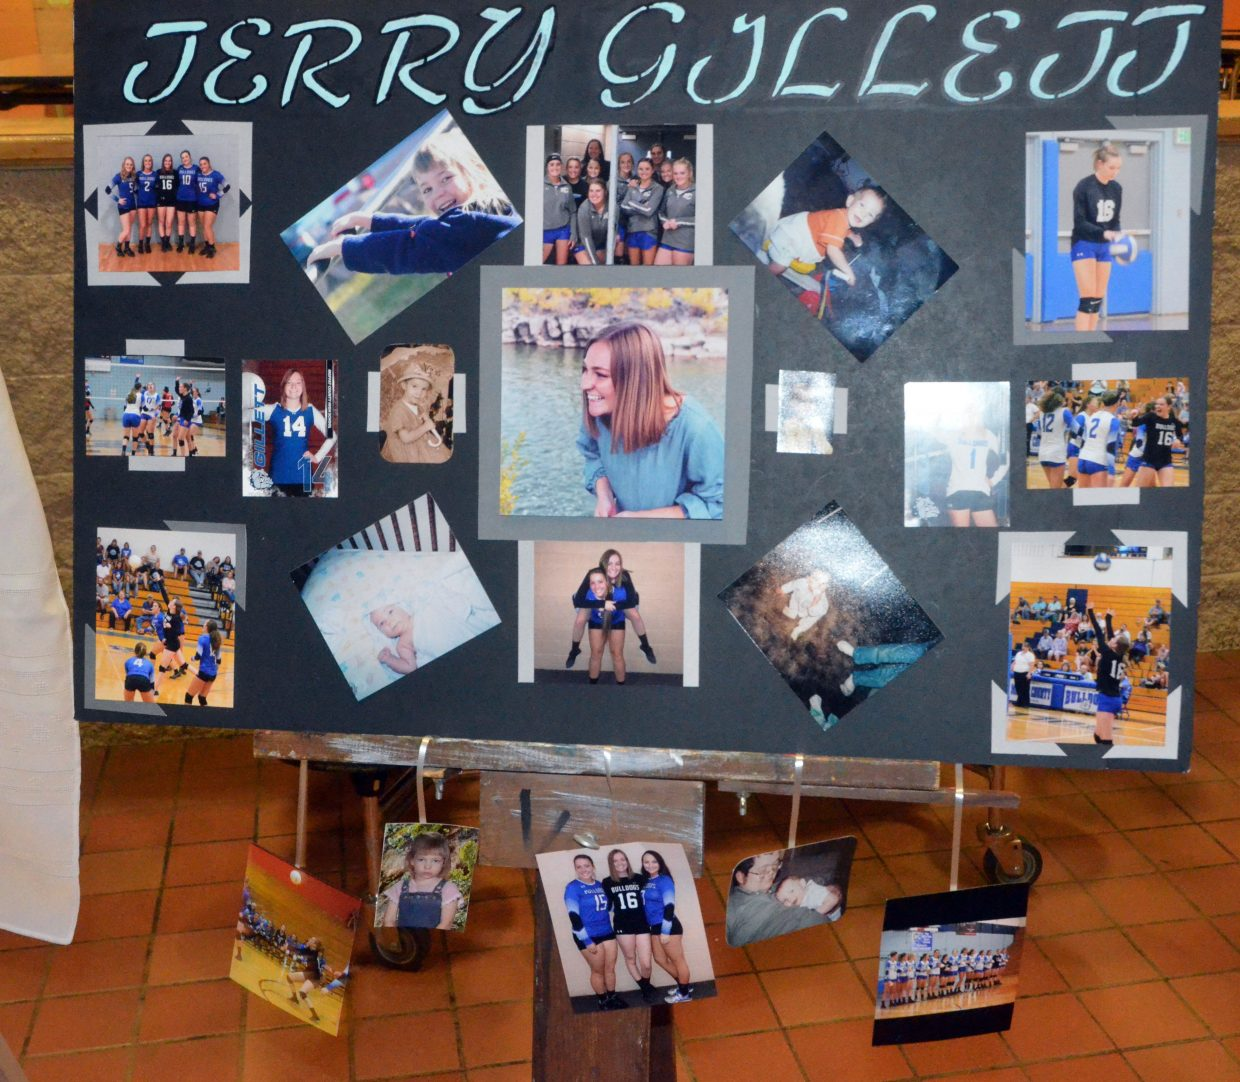 A collage in the lobby of  Moffat County High School celebrates Terry Gillett as part of MCHS volleyball's Senior Night.